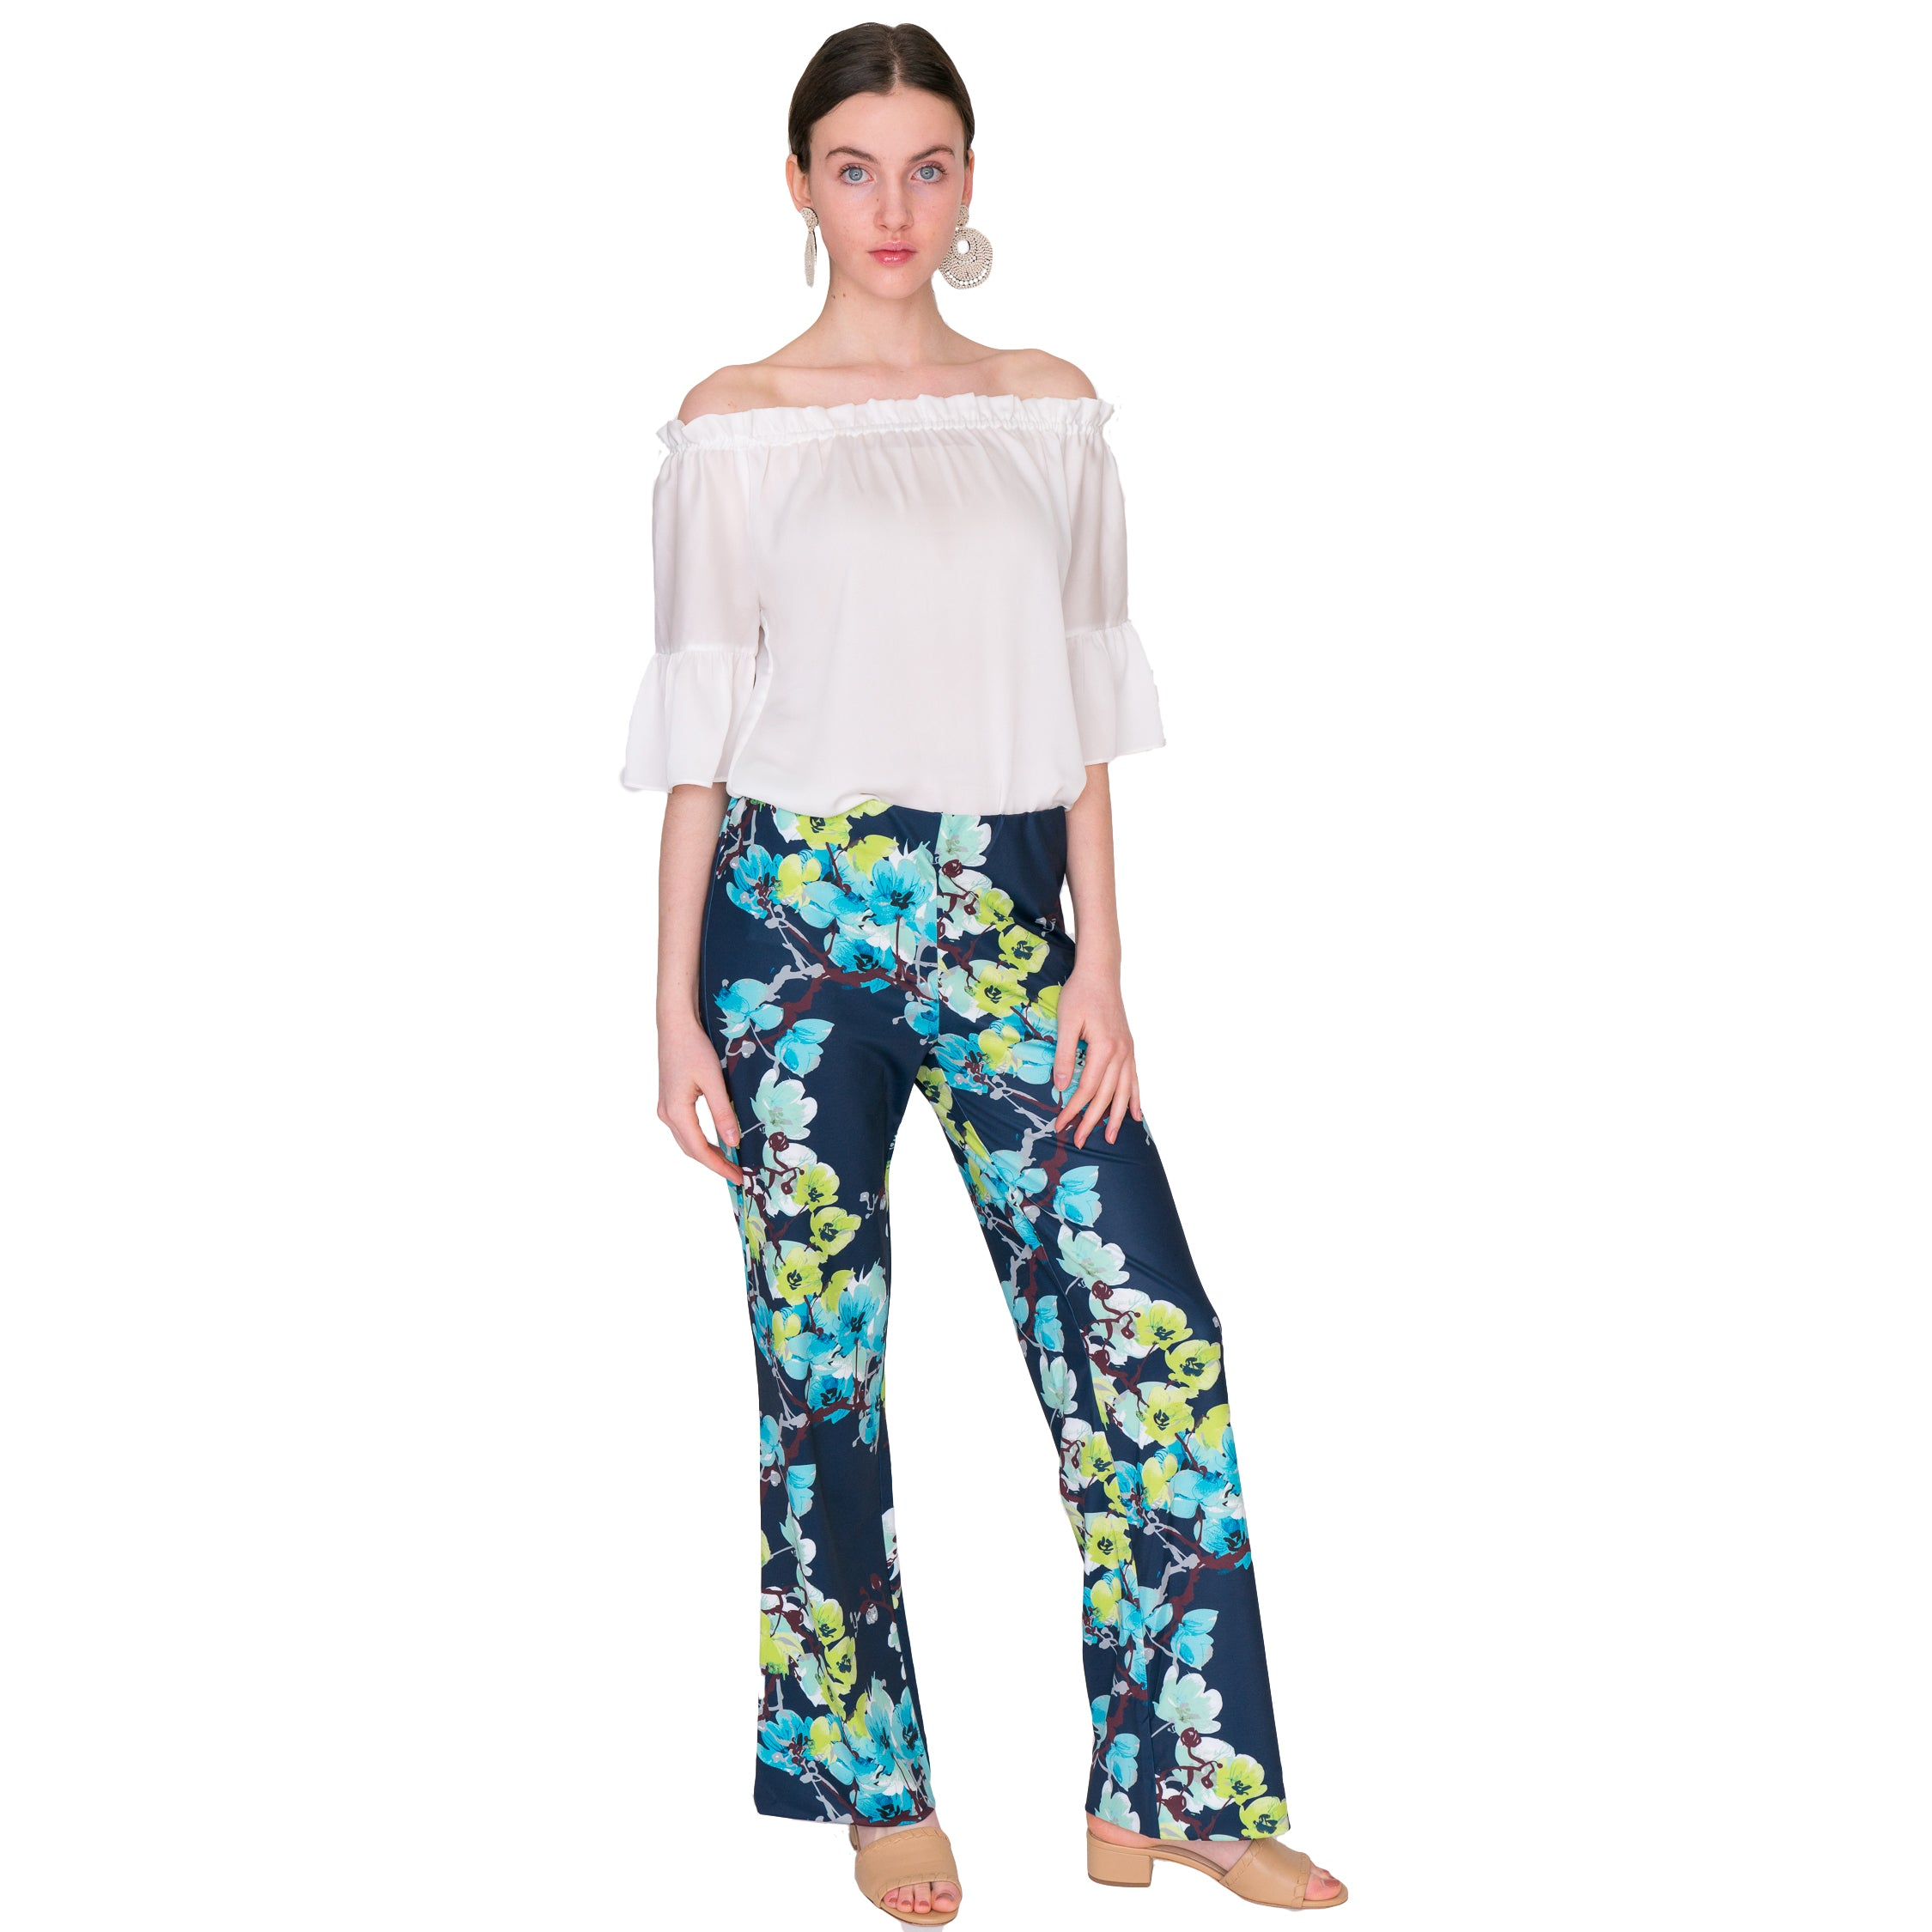 Toby Palazzo Pant in Navy Branch Floral - Elizabeth Ackerman New York